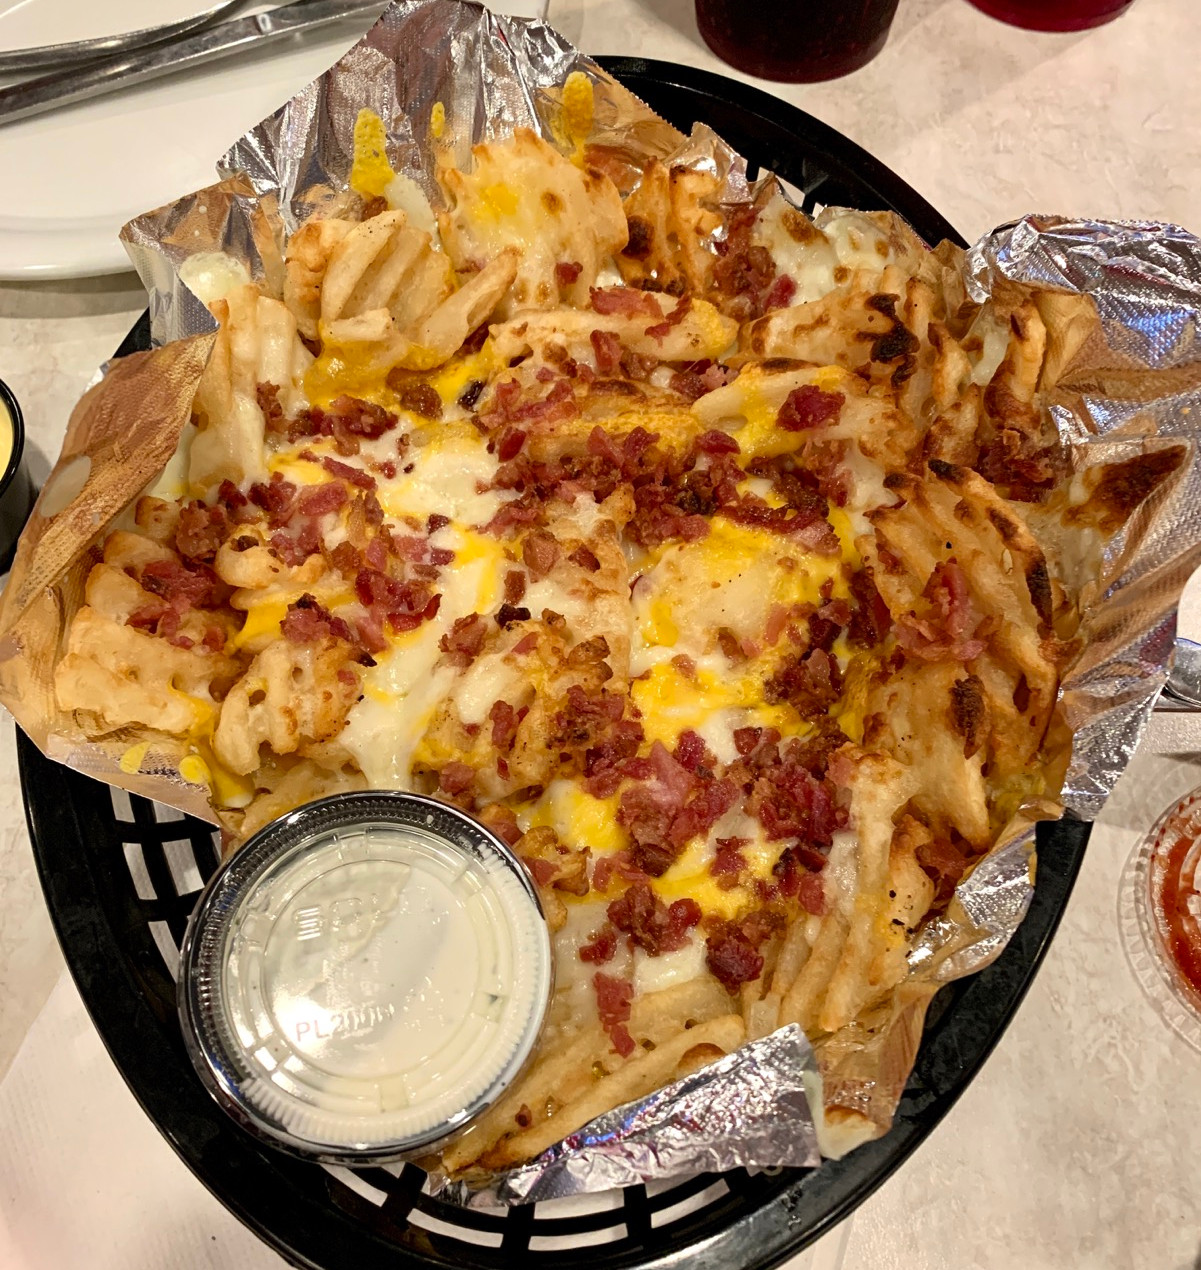 cheese bacon waffle fries with ranch dipping sauce